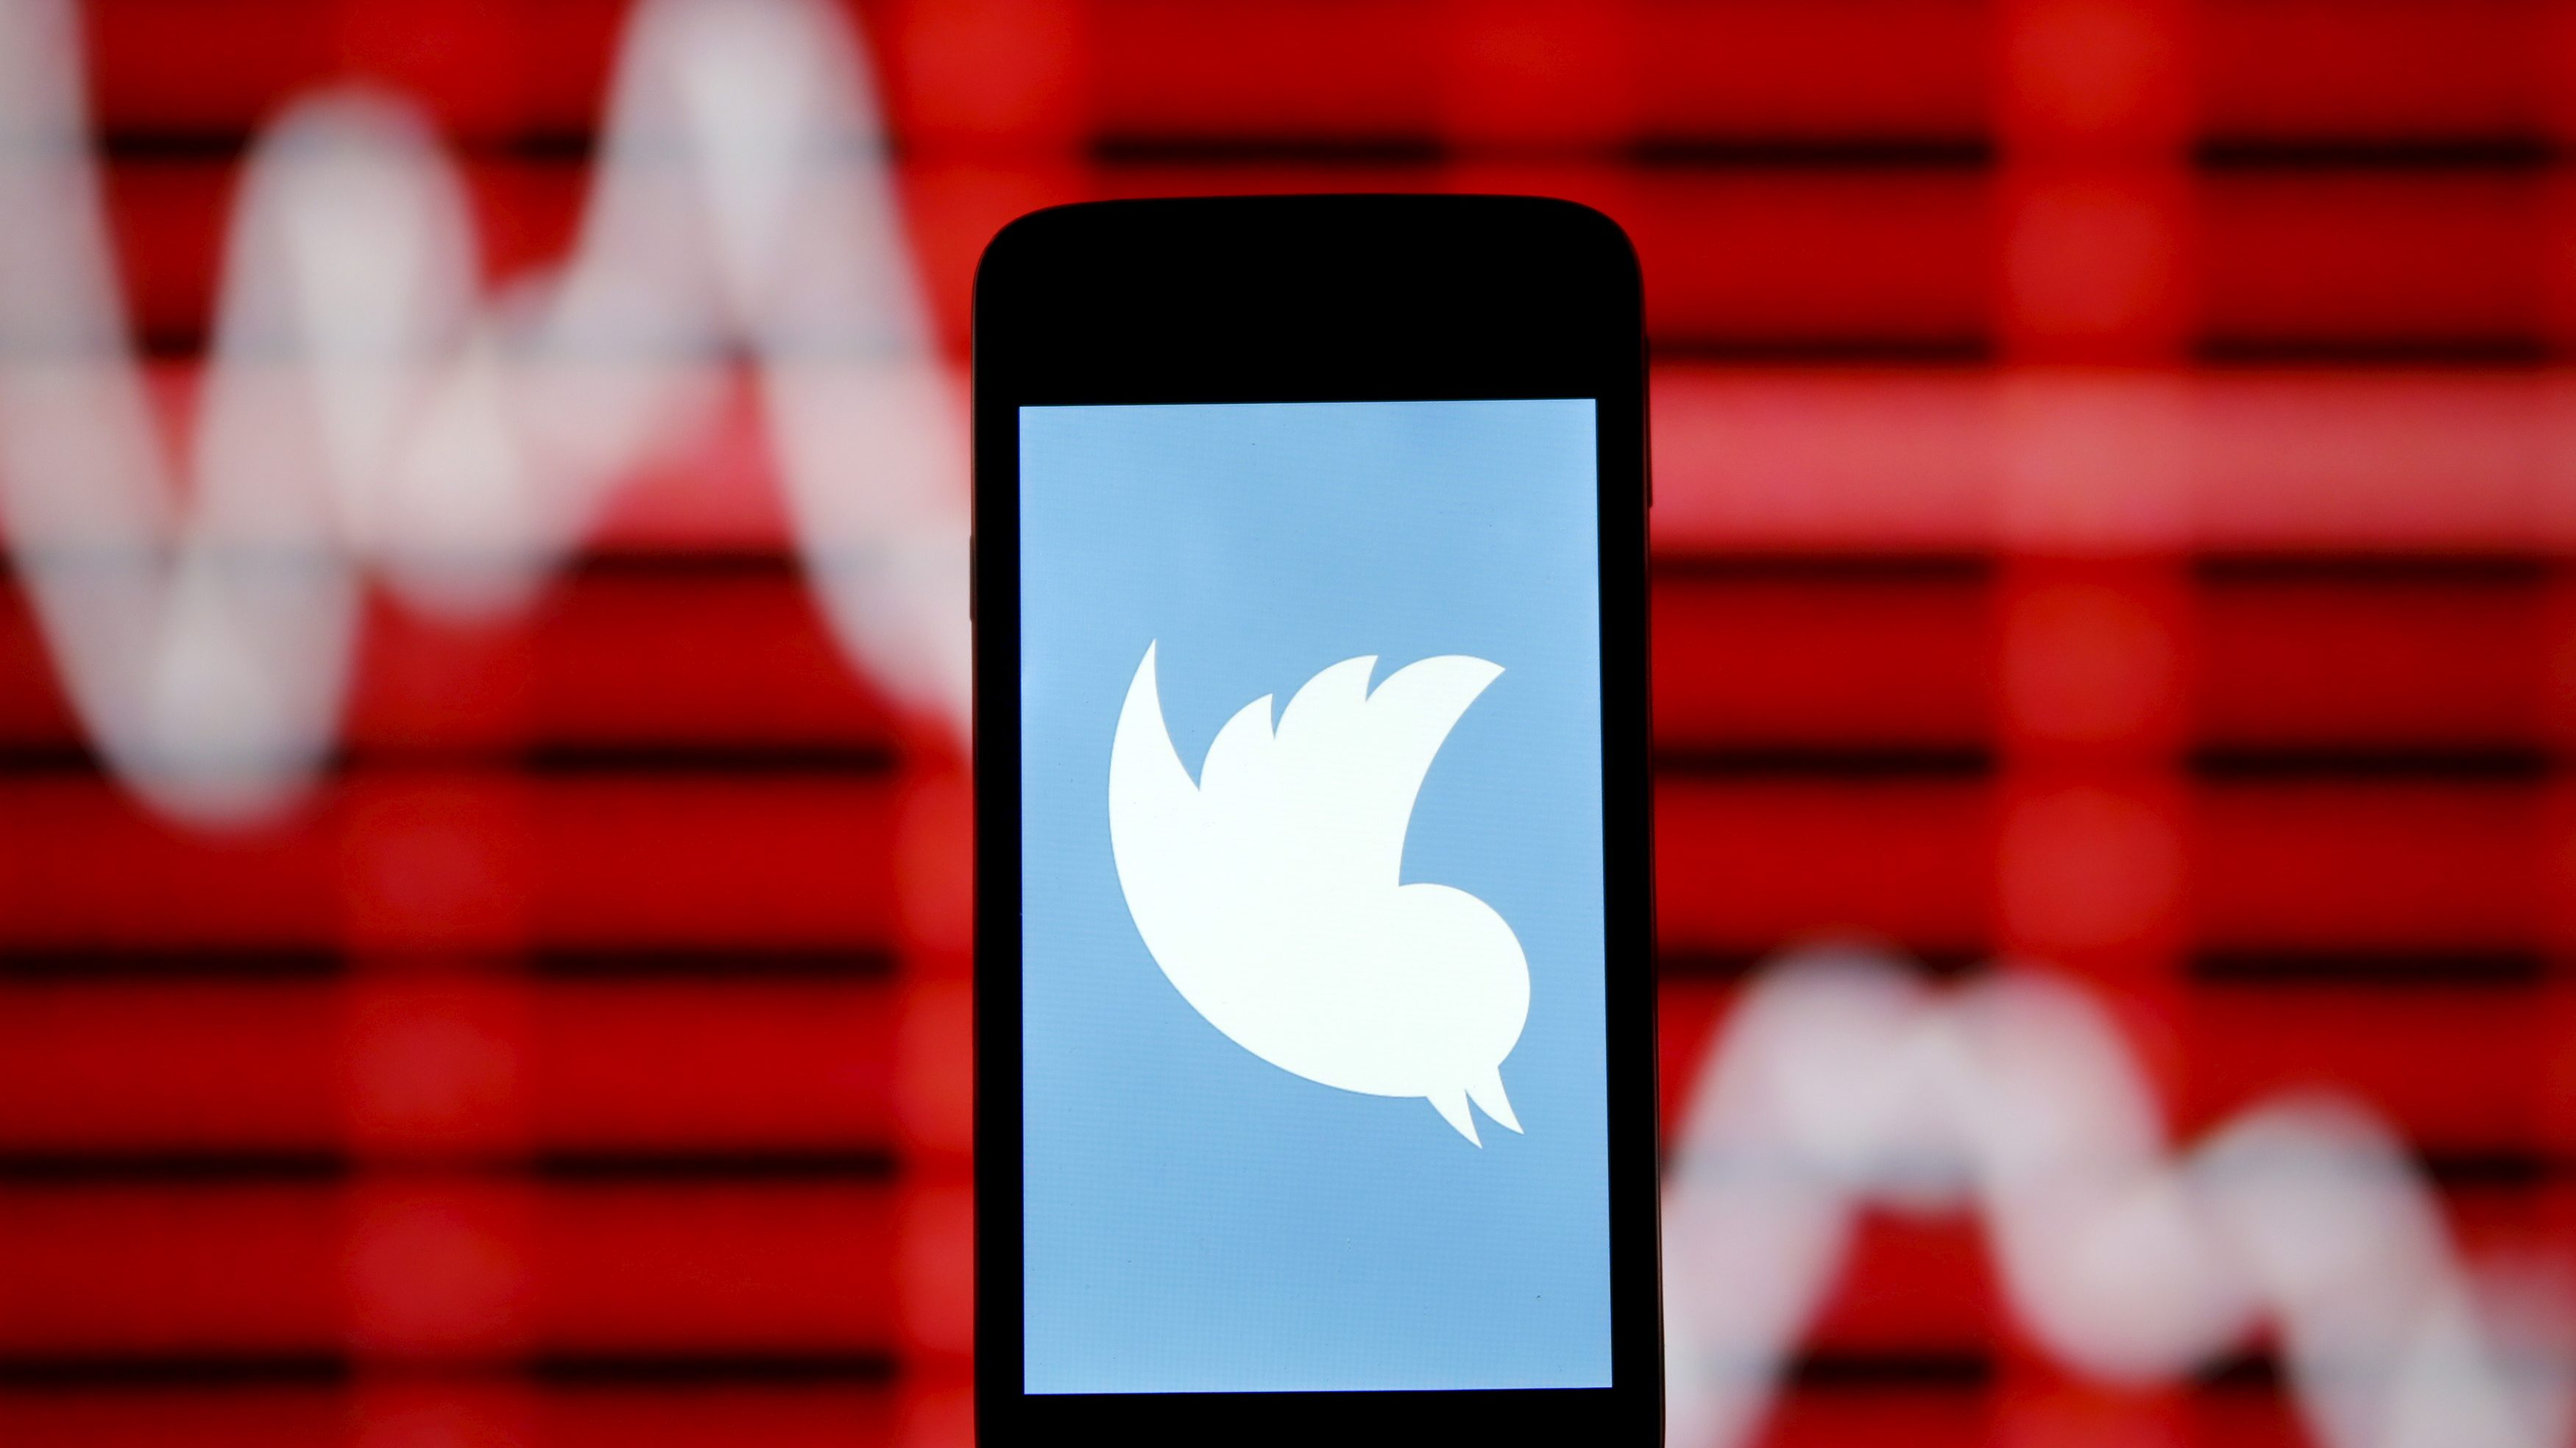 The Twitter logo is shown on smartphone in front of a displayed stock graph in central Bosnian town of Zenica, Bosnia and Herzegovina, in this April 29, 2015 photo illustration.  Twitter Inc reported quarterly revenue that fell short of Wall Street estimates and cut its full-year forecast because of weak demand for its new direct response advertising, sending shares down as much as 24 percent on Tuesday. User growth was off to a slow start in April, the company said, even though it hit its own target for the just-ended first quarter.Twitter forecast 2015 revenue of $2.17 billion to $2.27 billion, down from its earlier forecast of $2.3 billion to $2.35 billion. Analysts on average had been expecting $2.37 billion. Twitter said its new direct response ads, intended to encourage actions such as clicking on a link to an advertiser's website, did not produce the revenue expected.